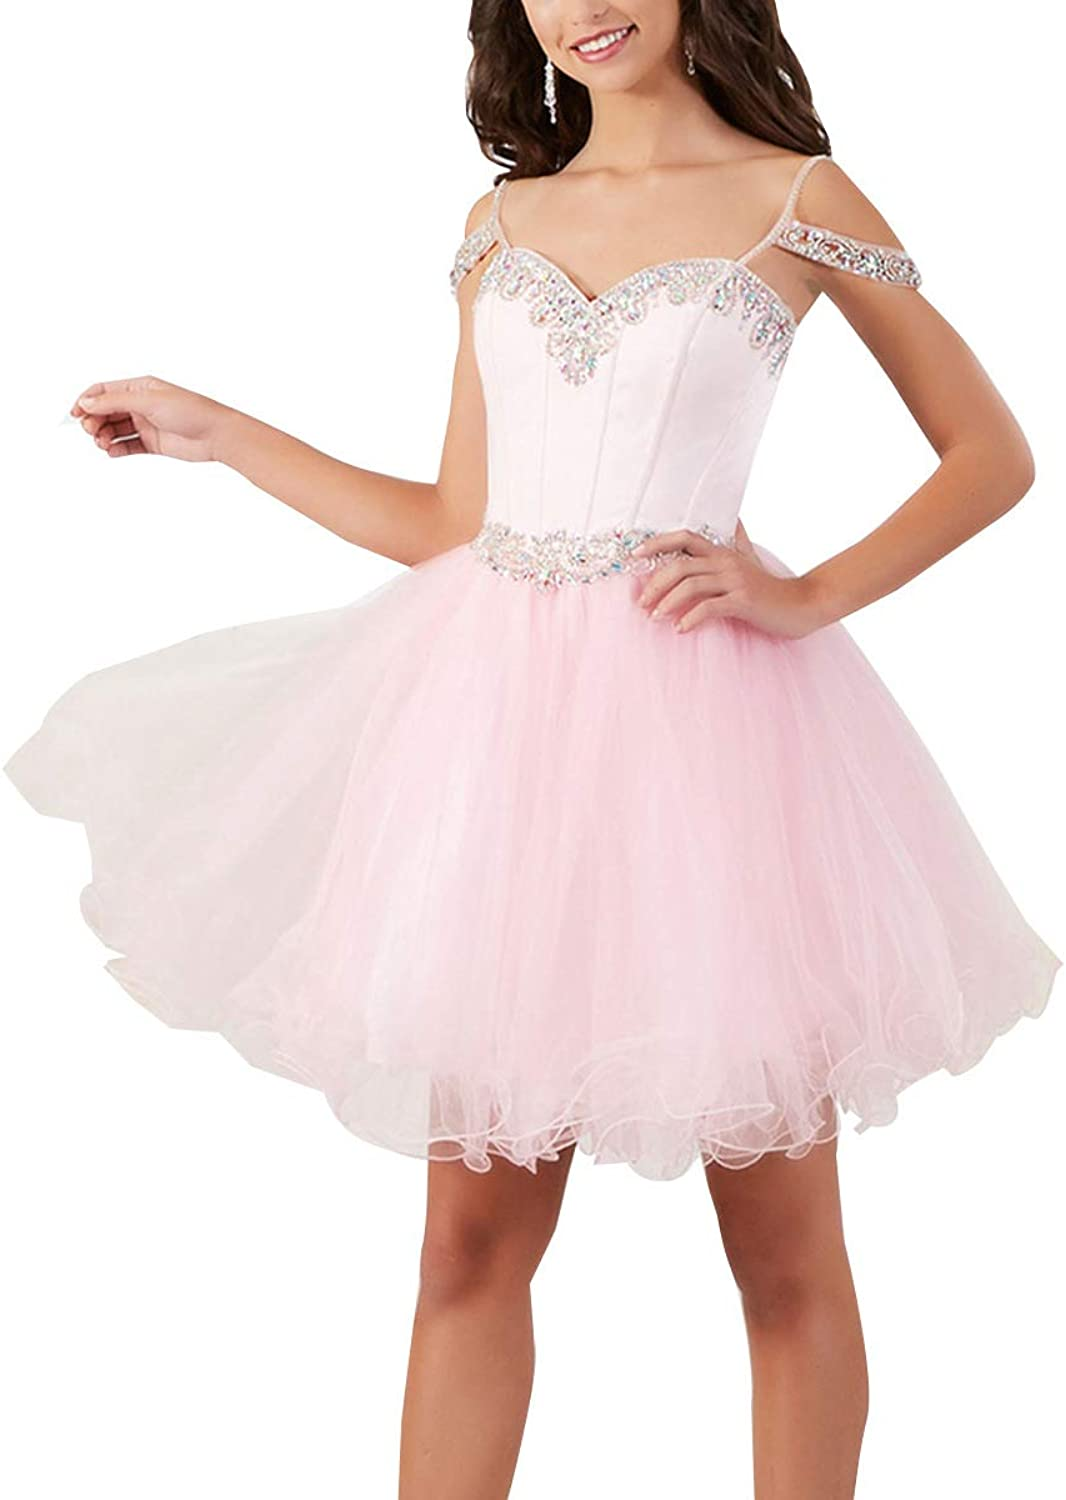 Homecoming Dress Spaghetti Strap Beaded Off Shoulder Tulle Short Prom Cocktail Gown